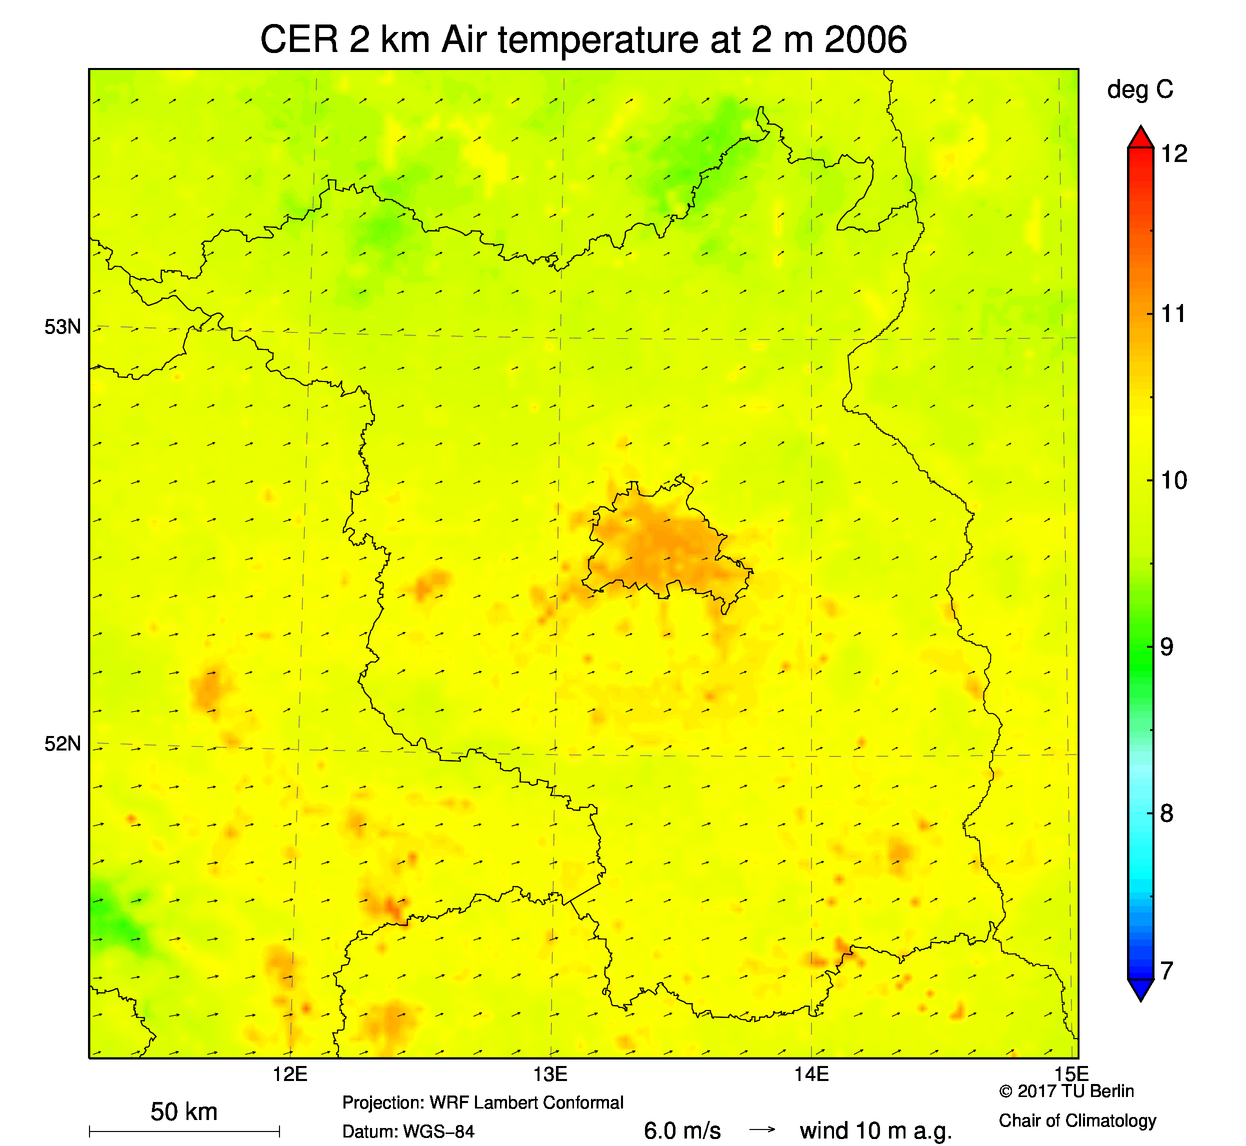 Mean Air Temperature at 2 m 2006